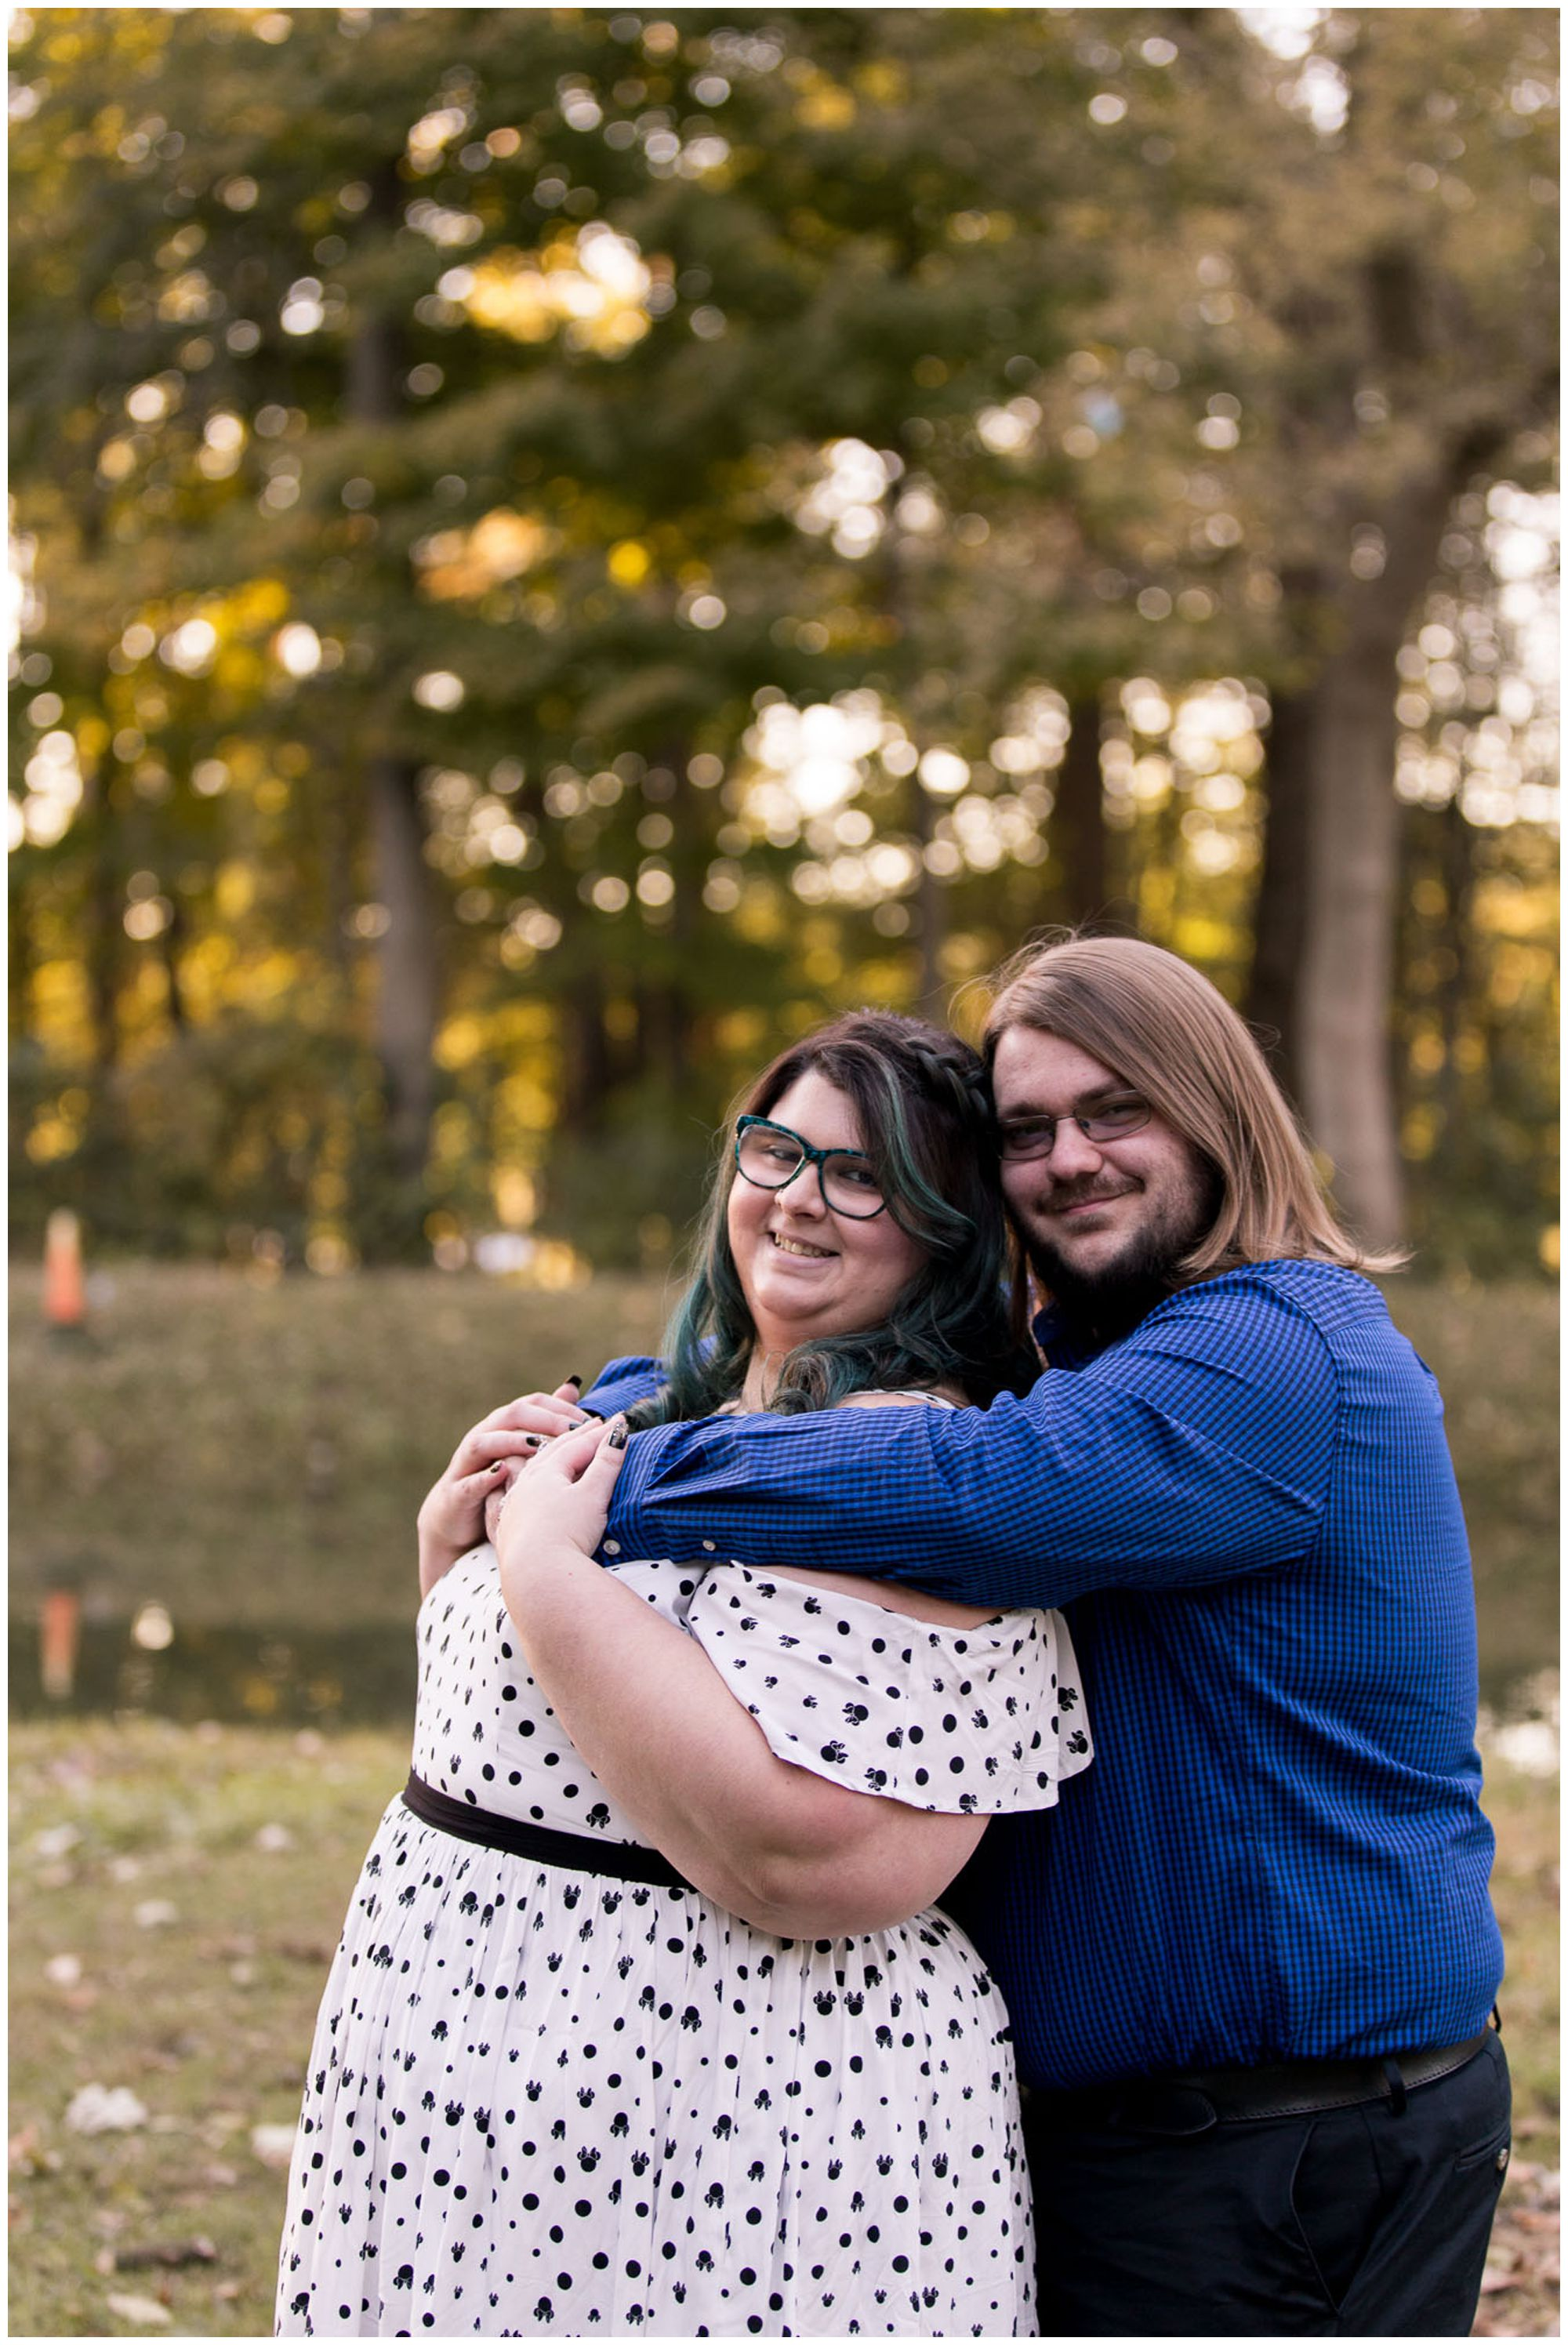 husband and wife anniversary session at Holcomb Gardens in Indianapolis